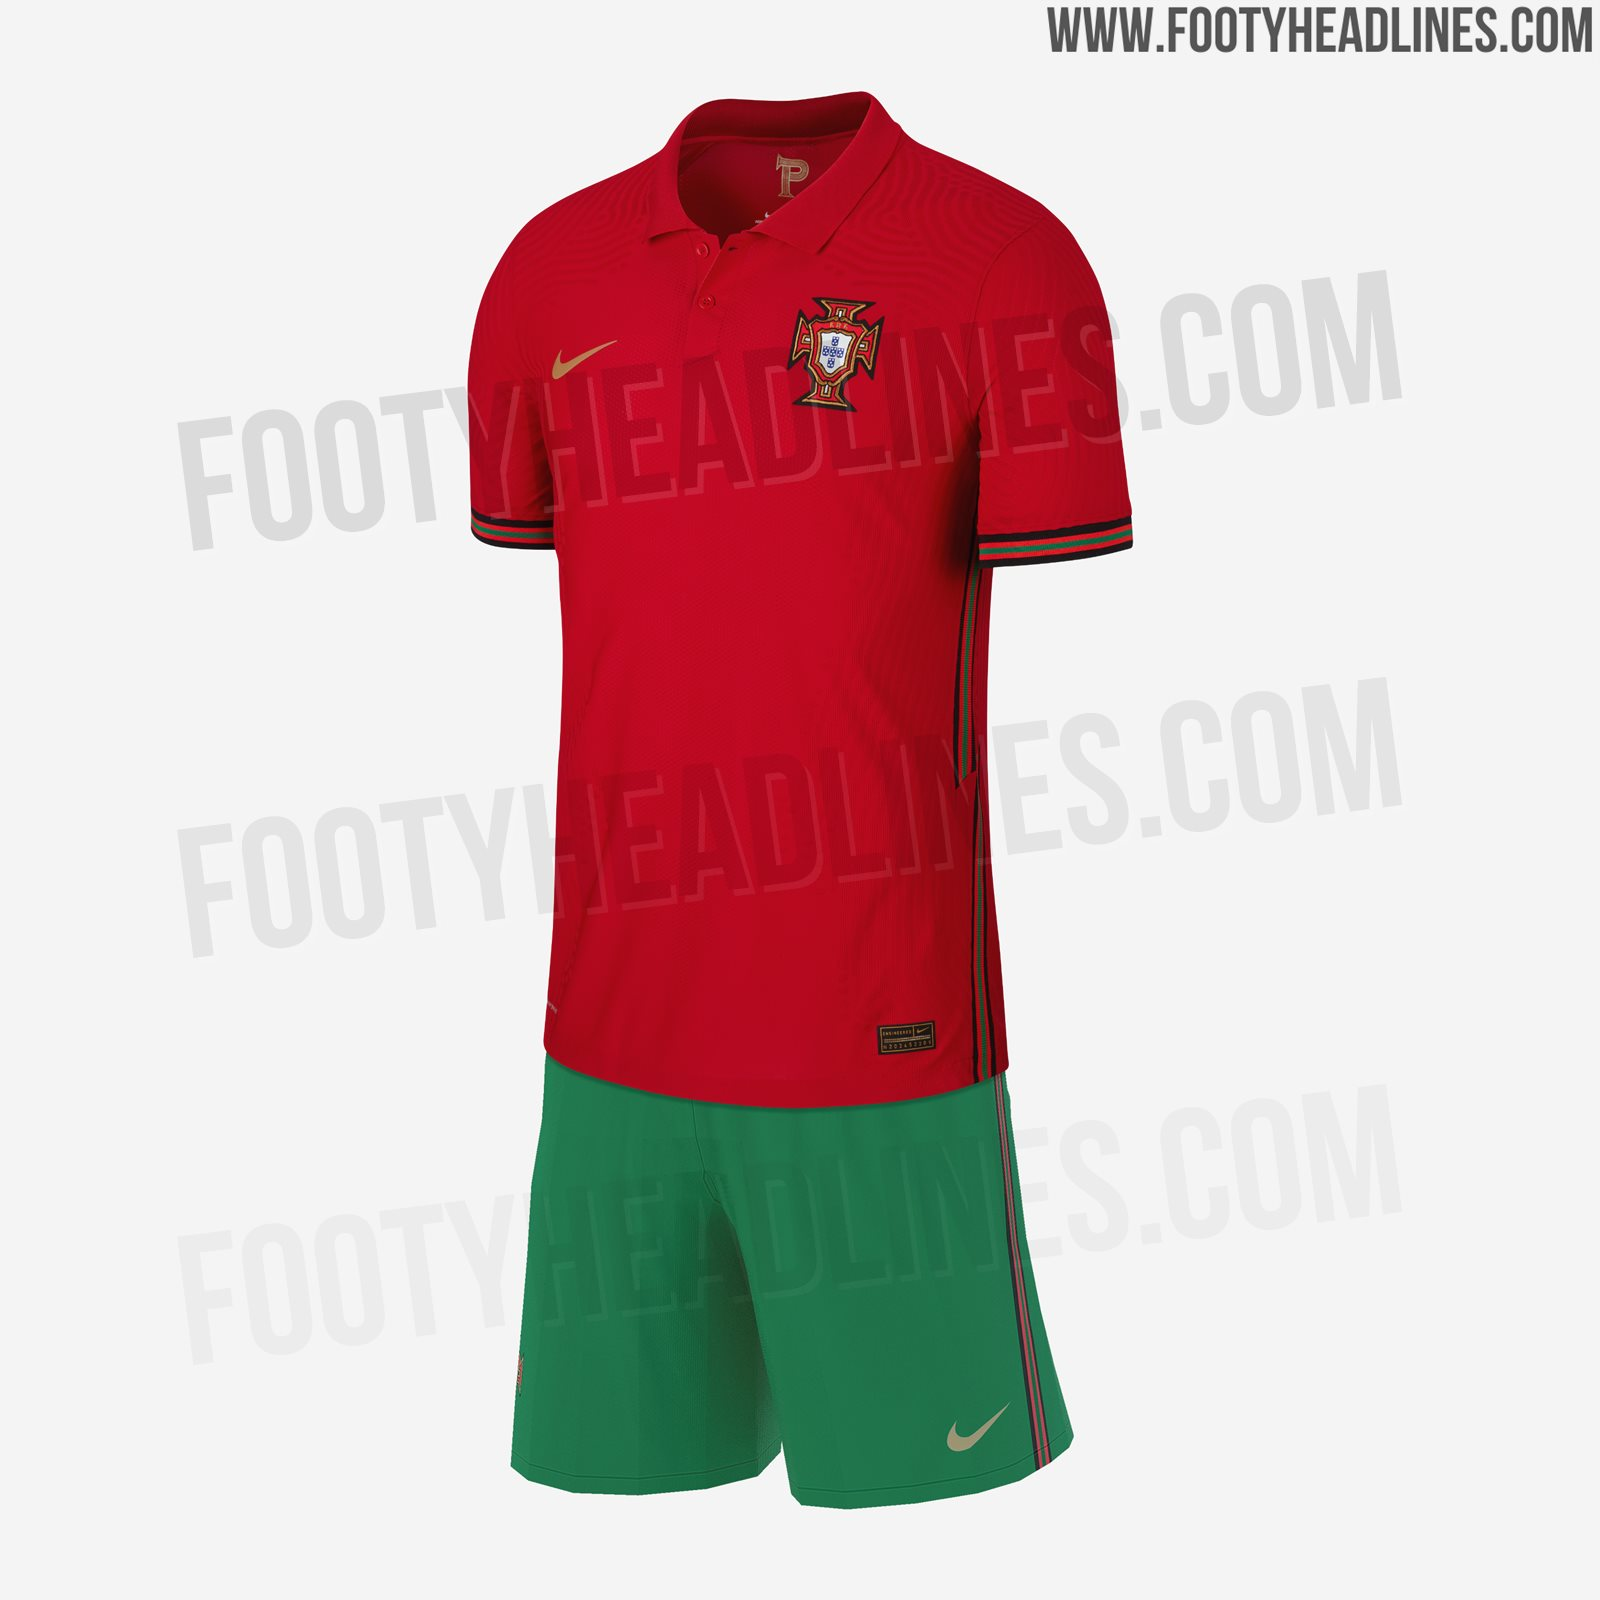 Nike Portugal Euro 2020 Home Kit Leaked - Even More New Pictures - Footy Headlines